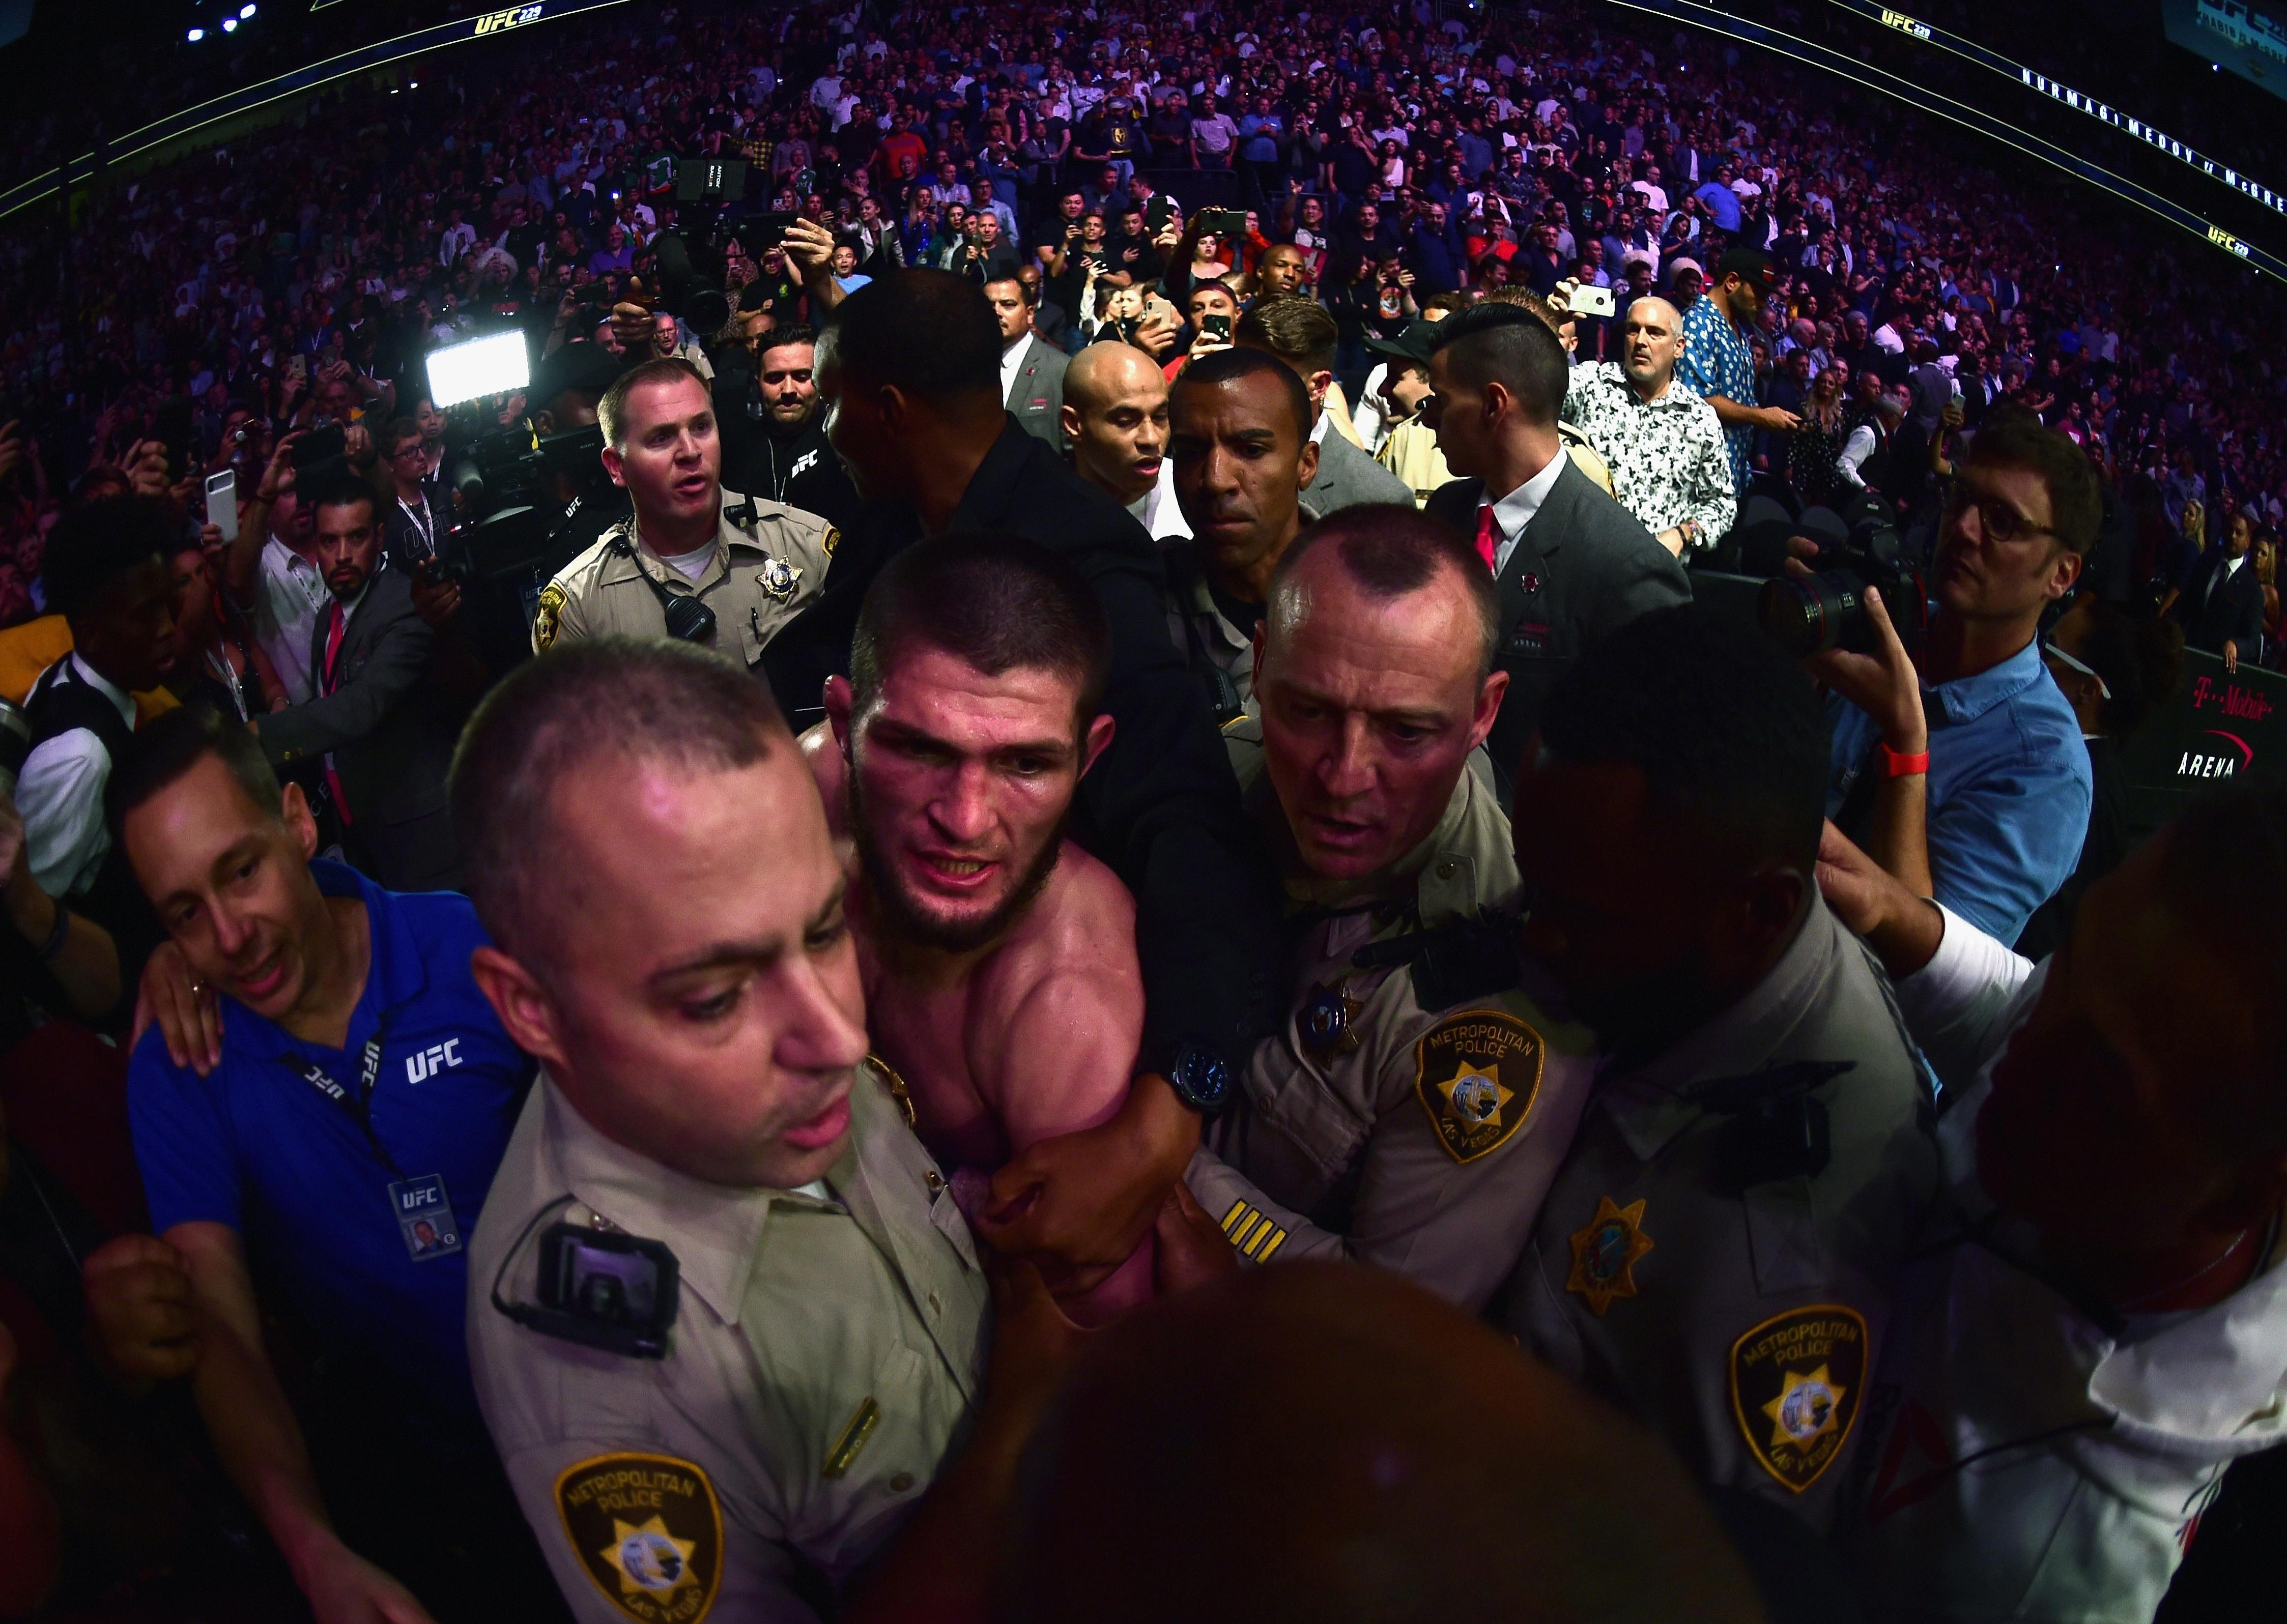 The mayhem exploded into life when Khabib Nurmagomedov scaled cage after the fight to confront Dillon Danis